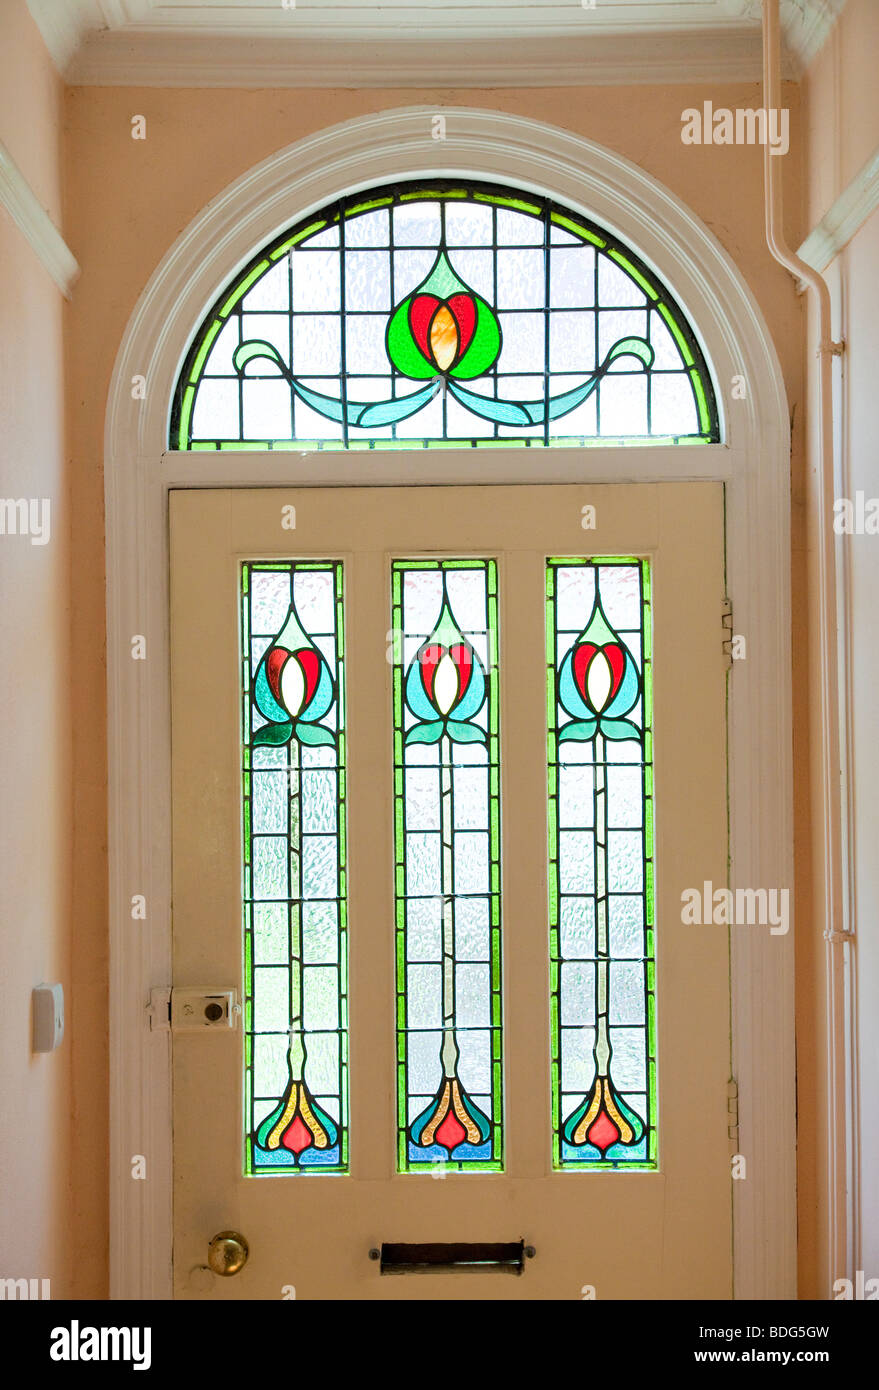 Victorian style front door with stained glass stock photo for Decorative window film stained glass victorian